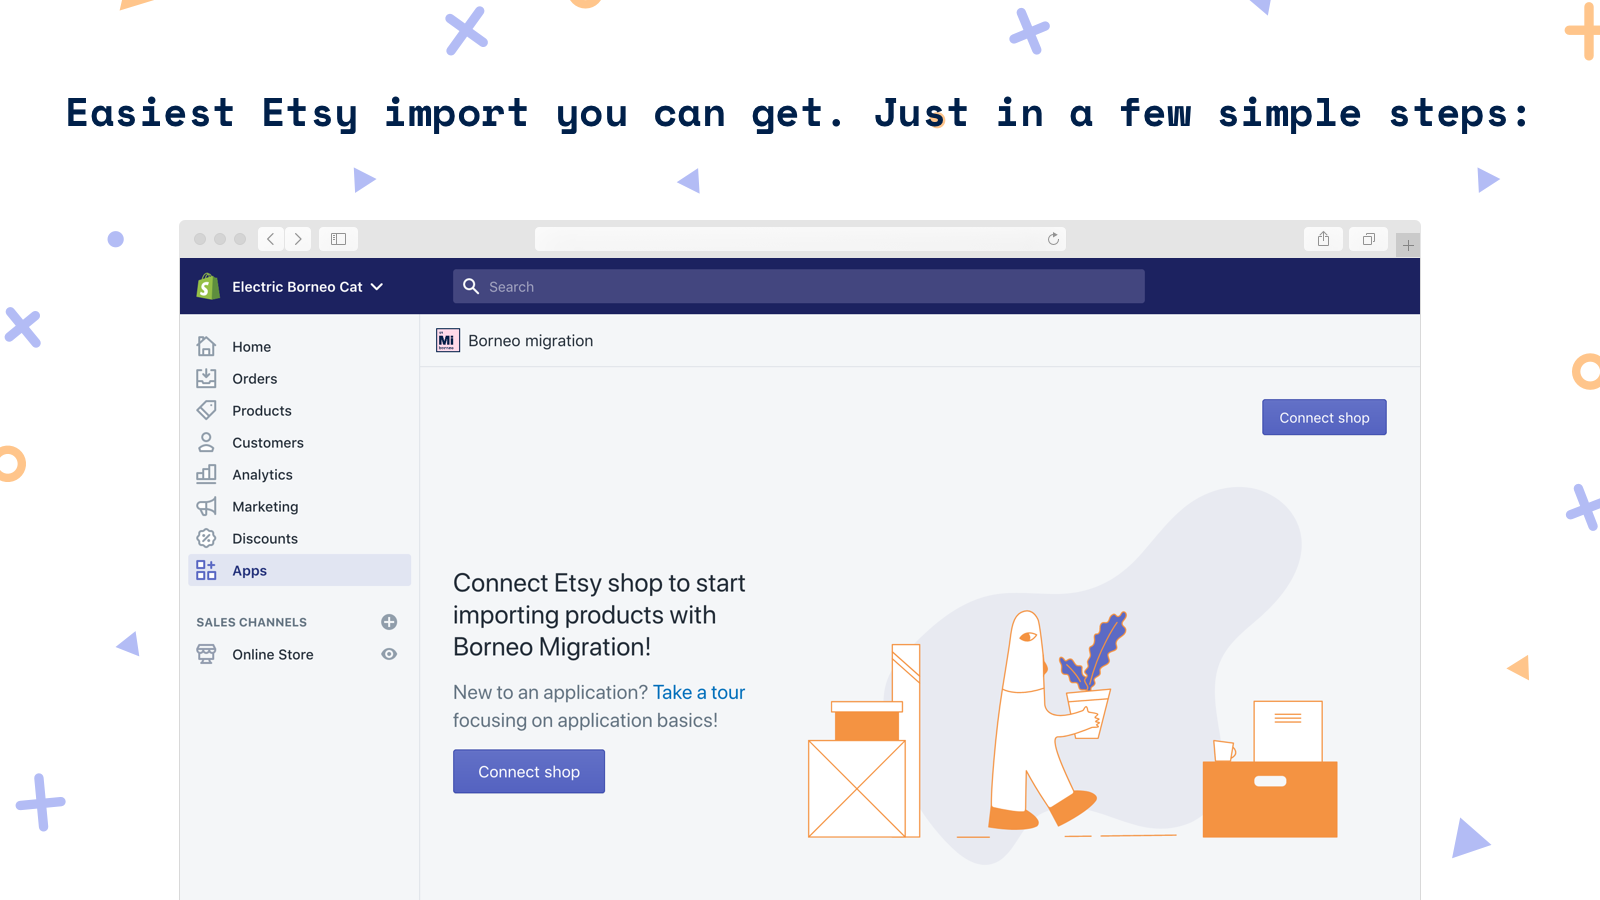 Easiest Etsy import you can get. Just in a few simple steps: